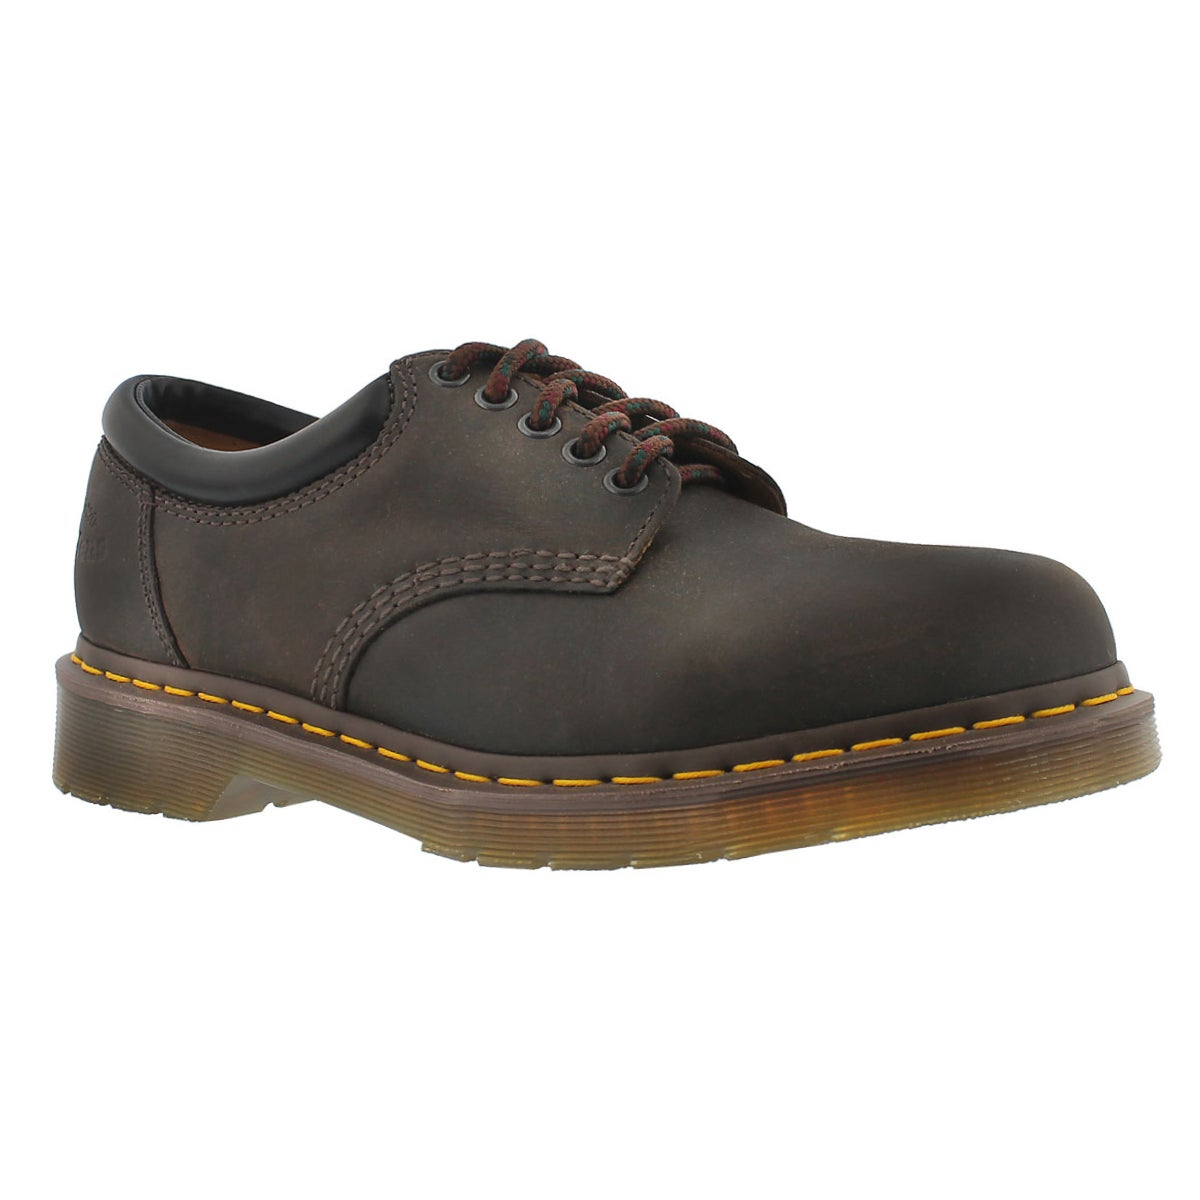 Men's 8053 5-Eye brown crazy horse leather oxfords